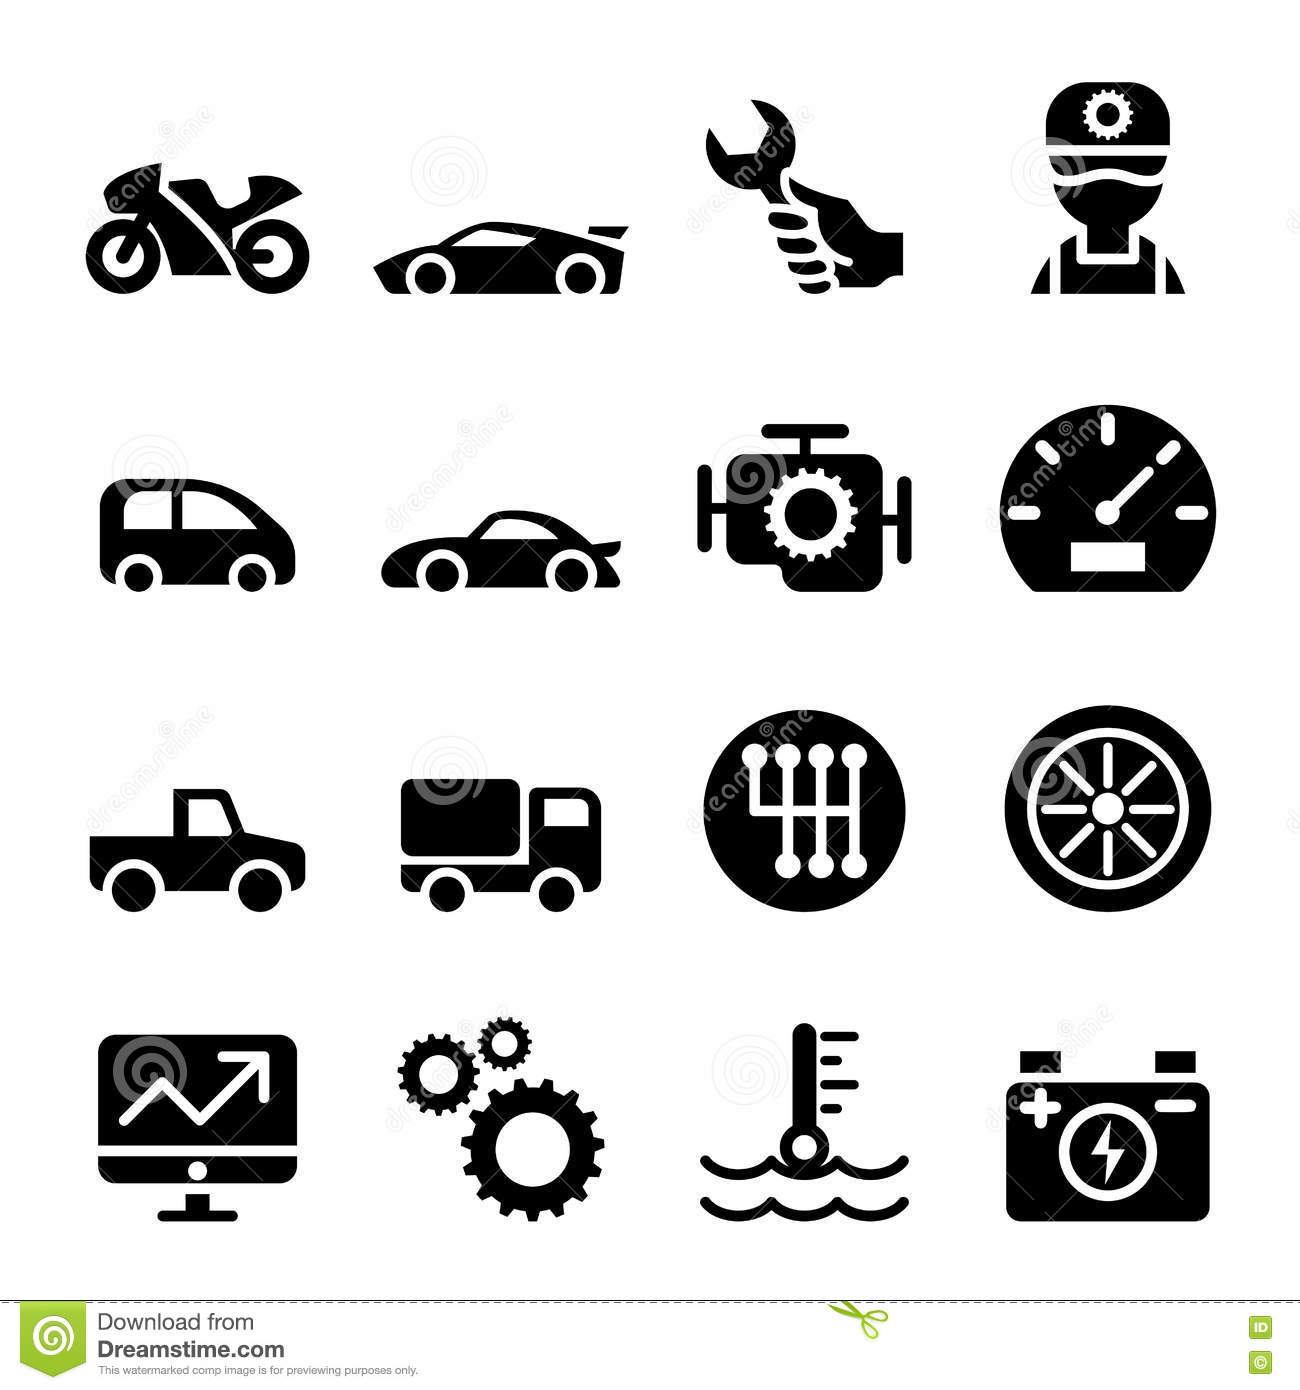 odicis likewise Clipart Needle 11 moreover Printable Fundraising Thermometer further Stock Illustration Car Maintenance Repair Icon Set Illustration Image75414559 as well What You Need To Know About Overheating A Vehicle. on temperature gauge clip art